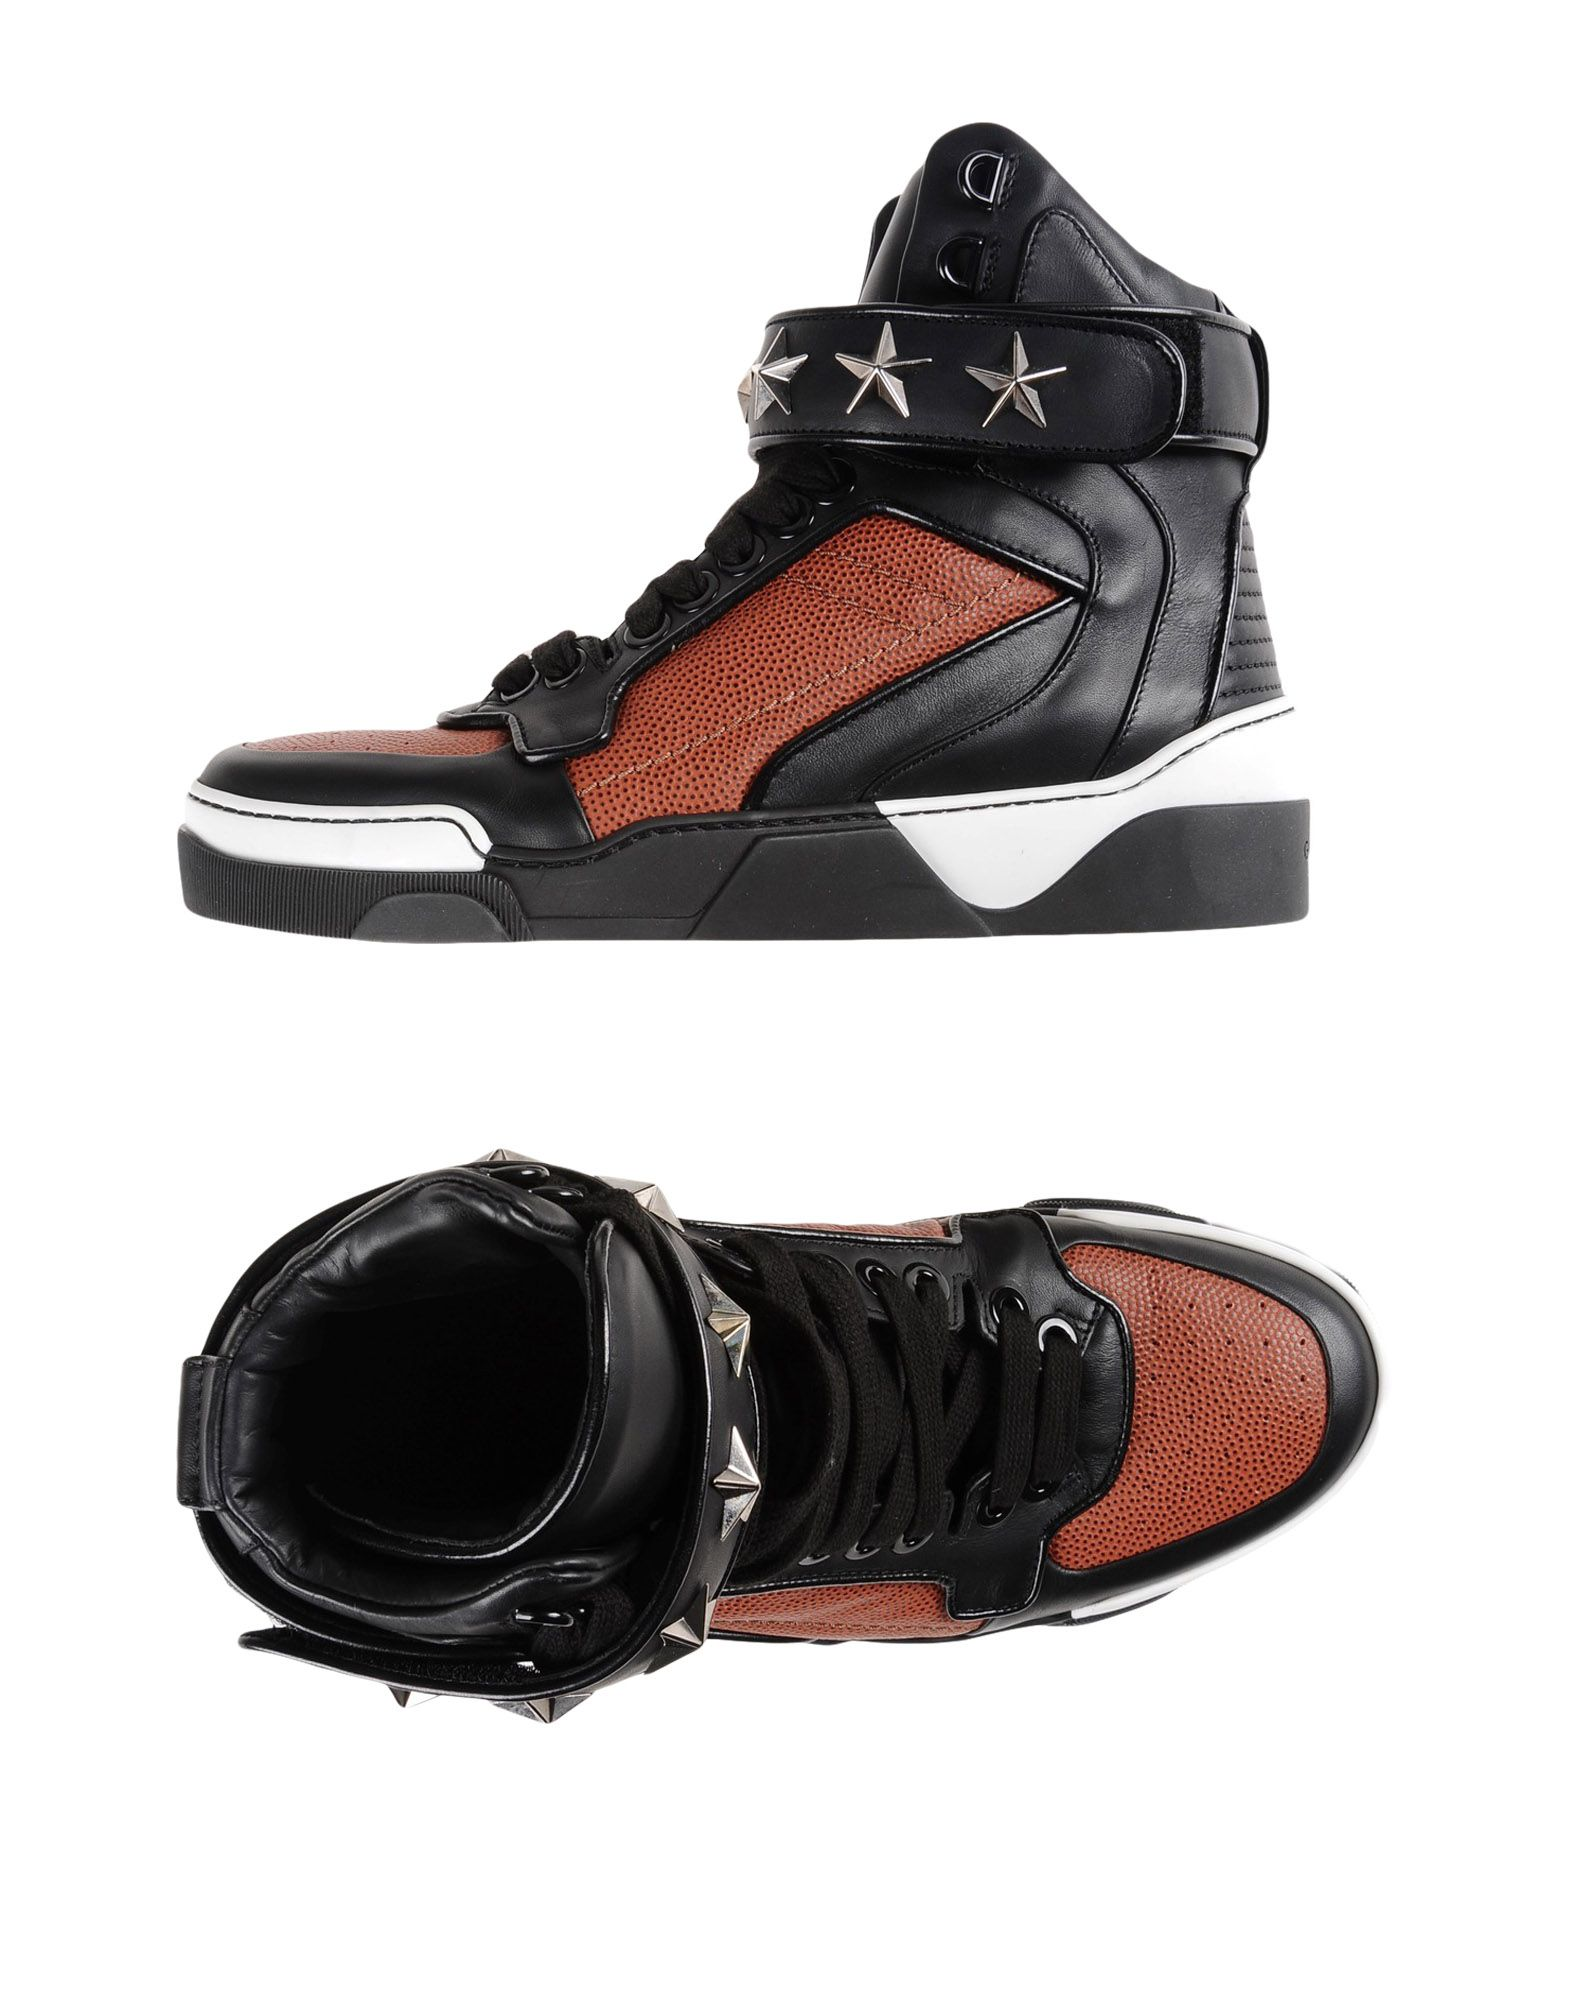 Givenchy Gute Sneakers Herren  11259607HE Gute Givenchy Qualität beliebte Schuhe b8c0ac